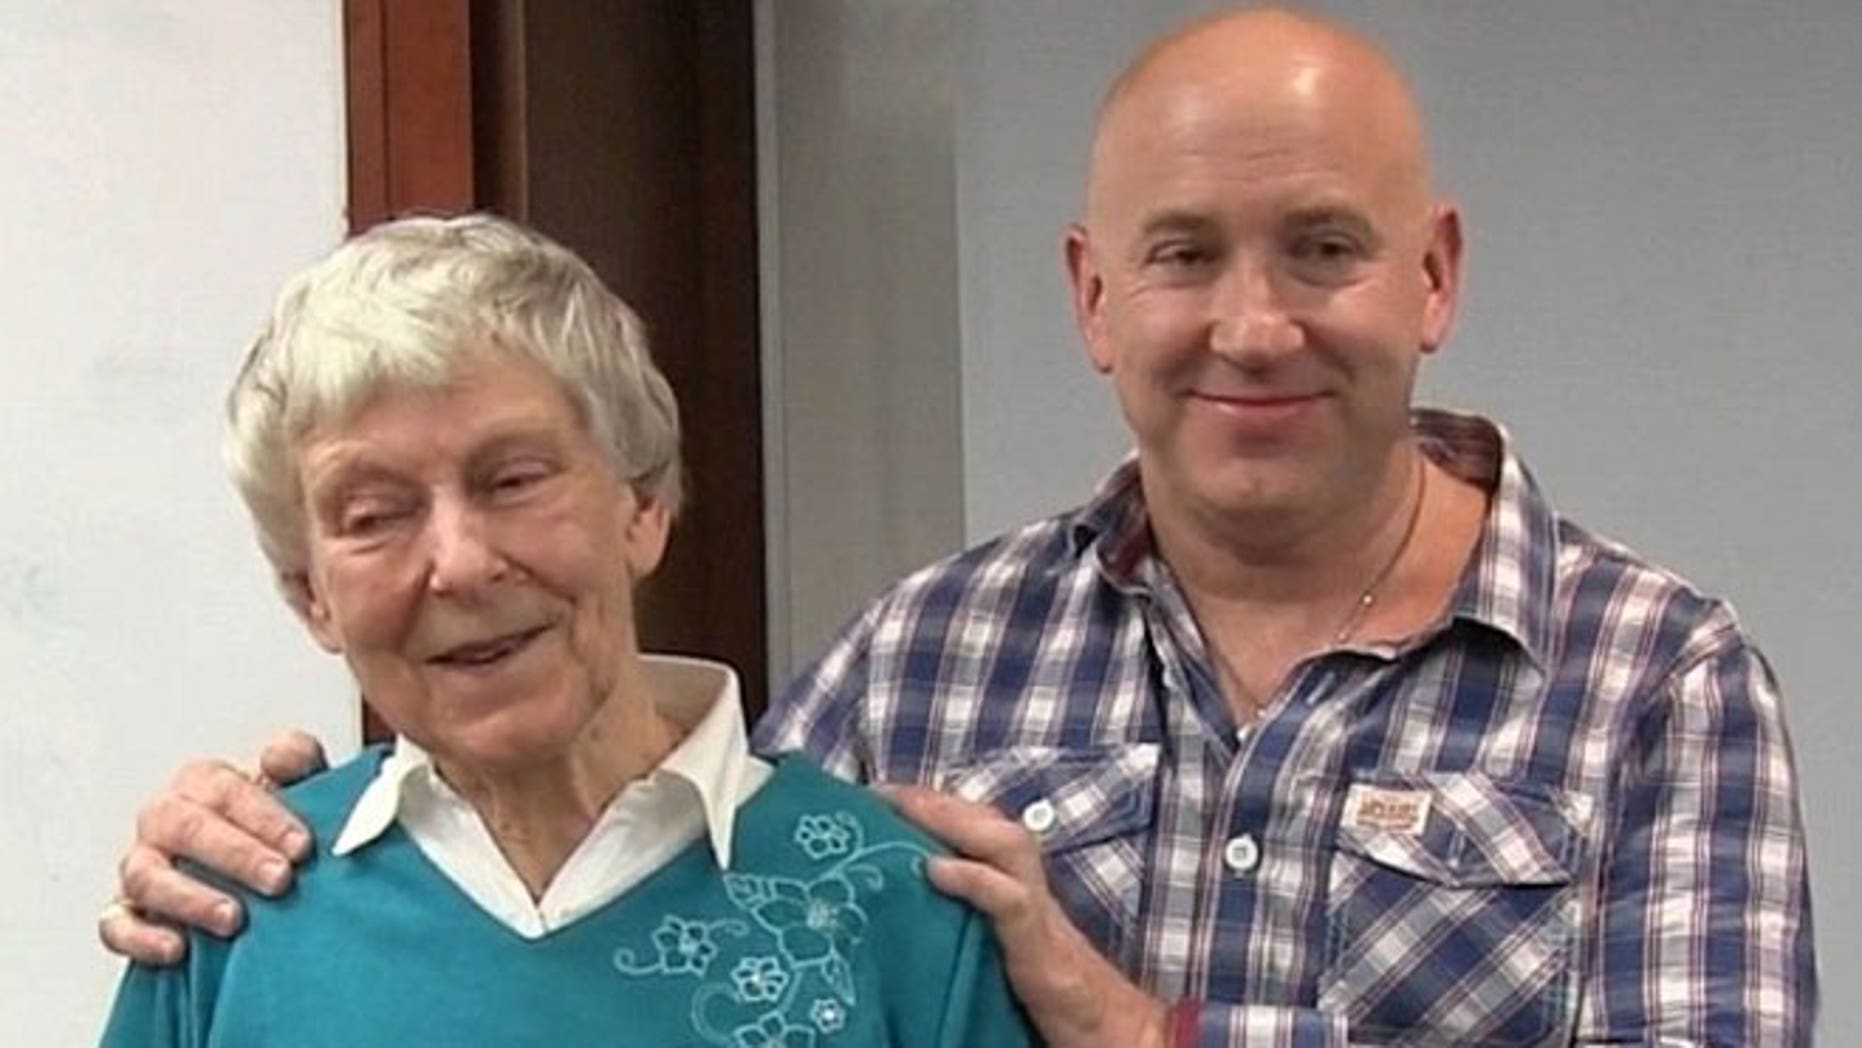 Mary Steward, 81 (left), pictured with Rob Kelly (right), founder of The Thrive Programme. Steward found Kelly's book online and credits it to her success in warding off emetophobia.